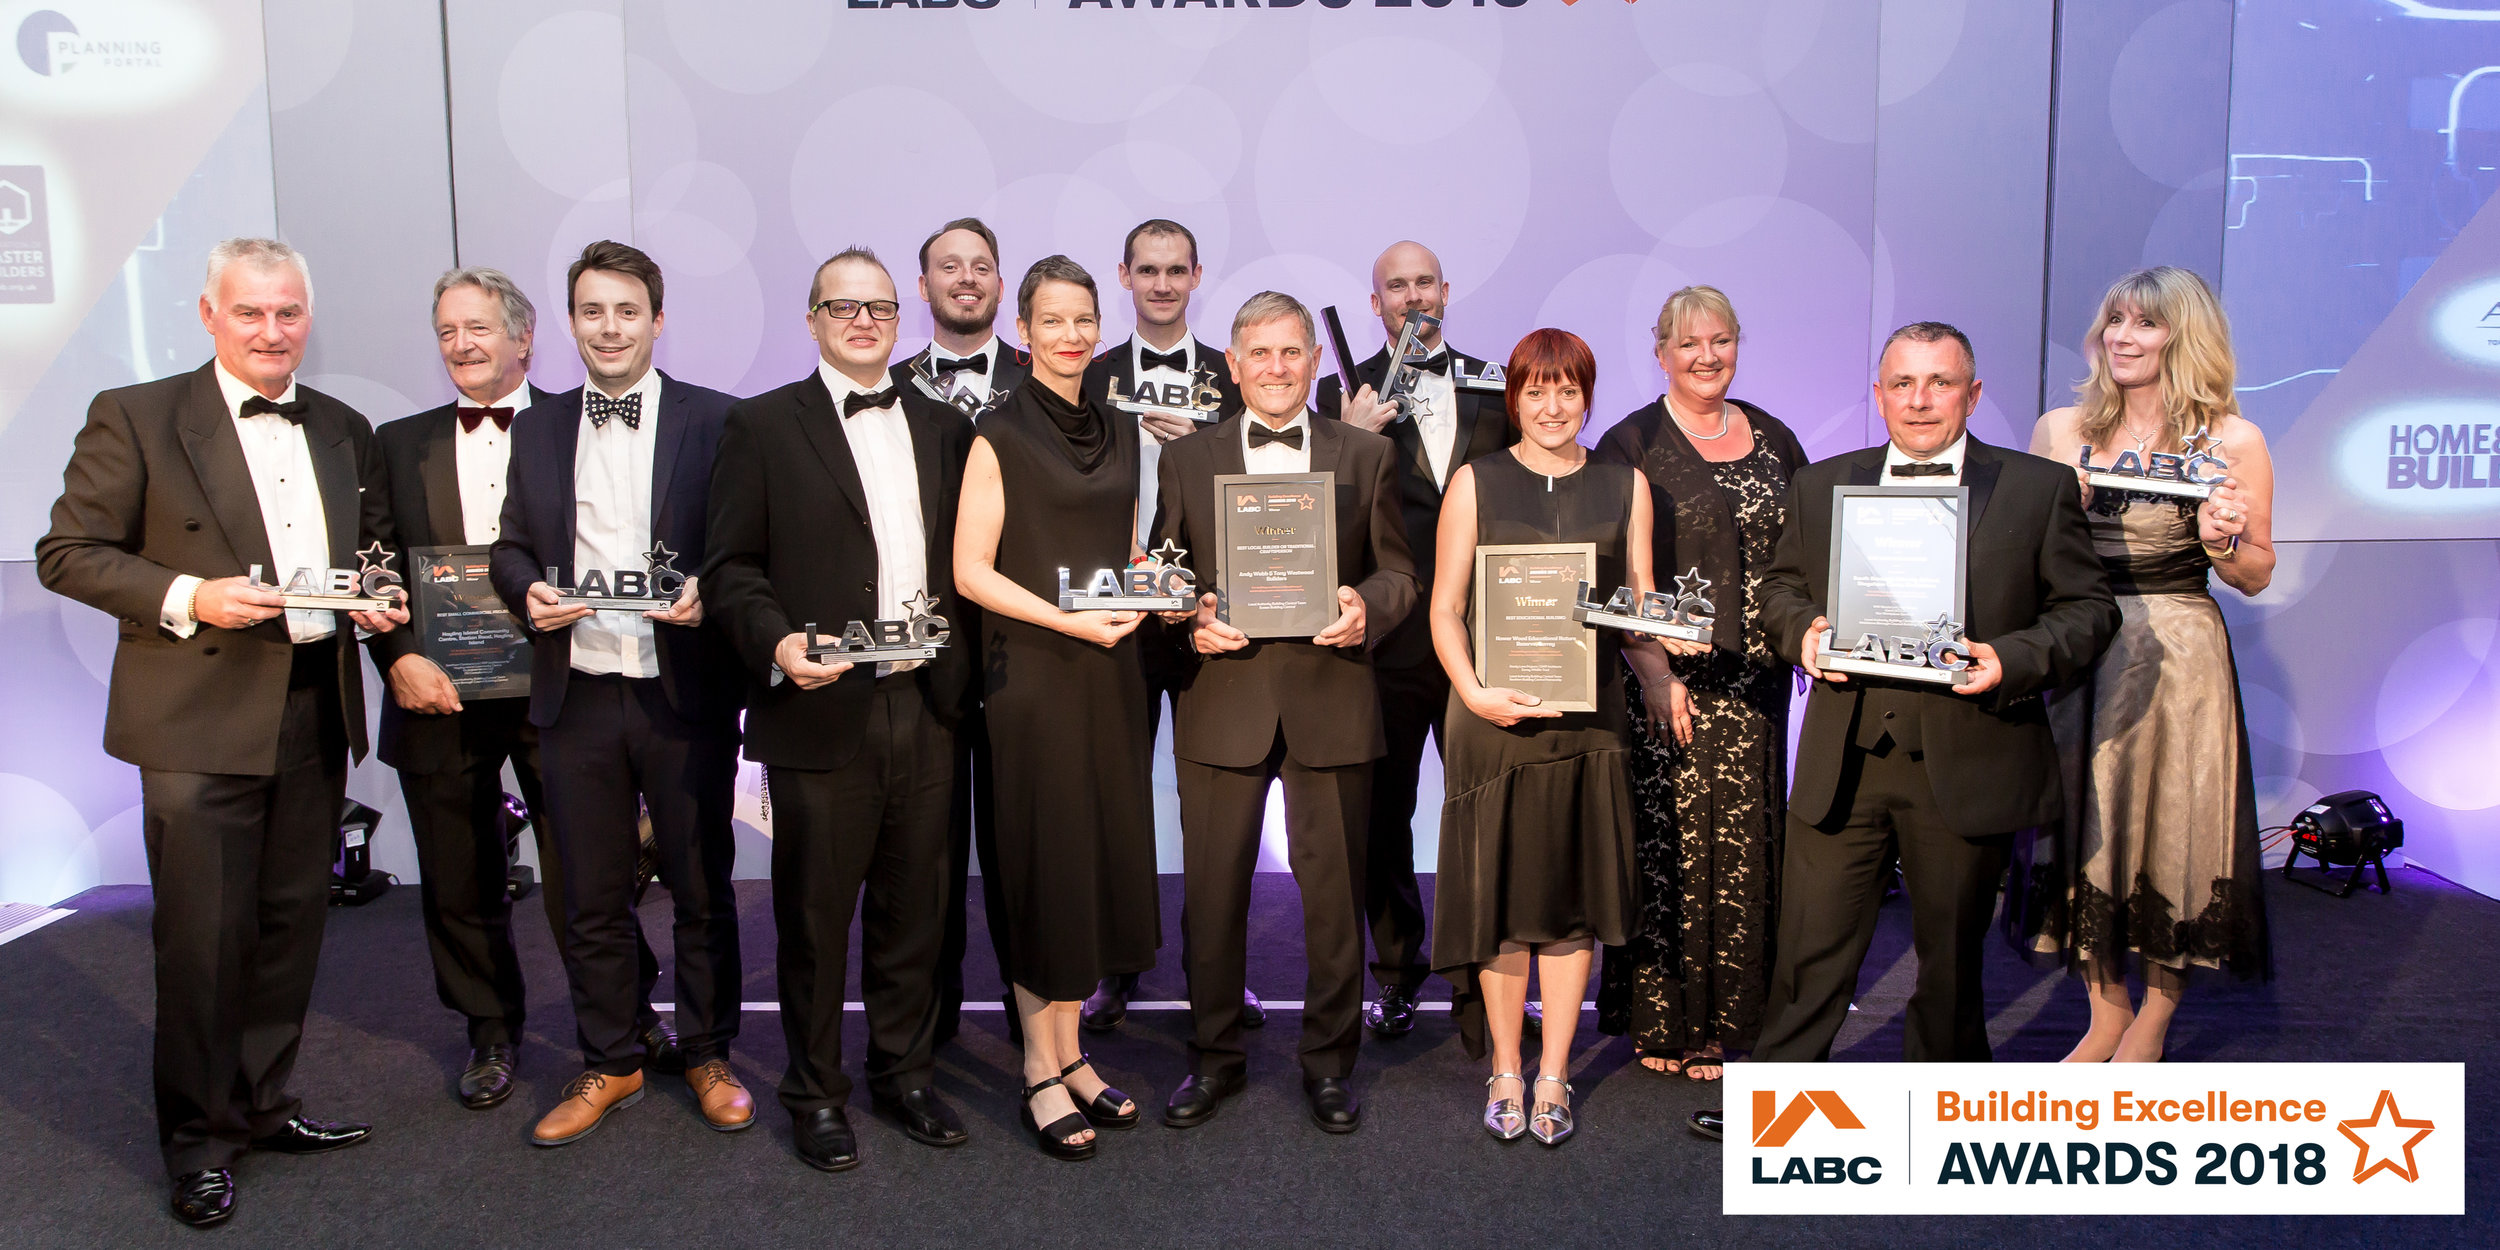 Carmen Slijpen (centre), Director & Programmer at Lewes Depot with the other winners